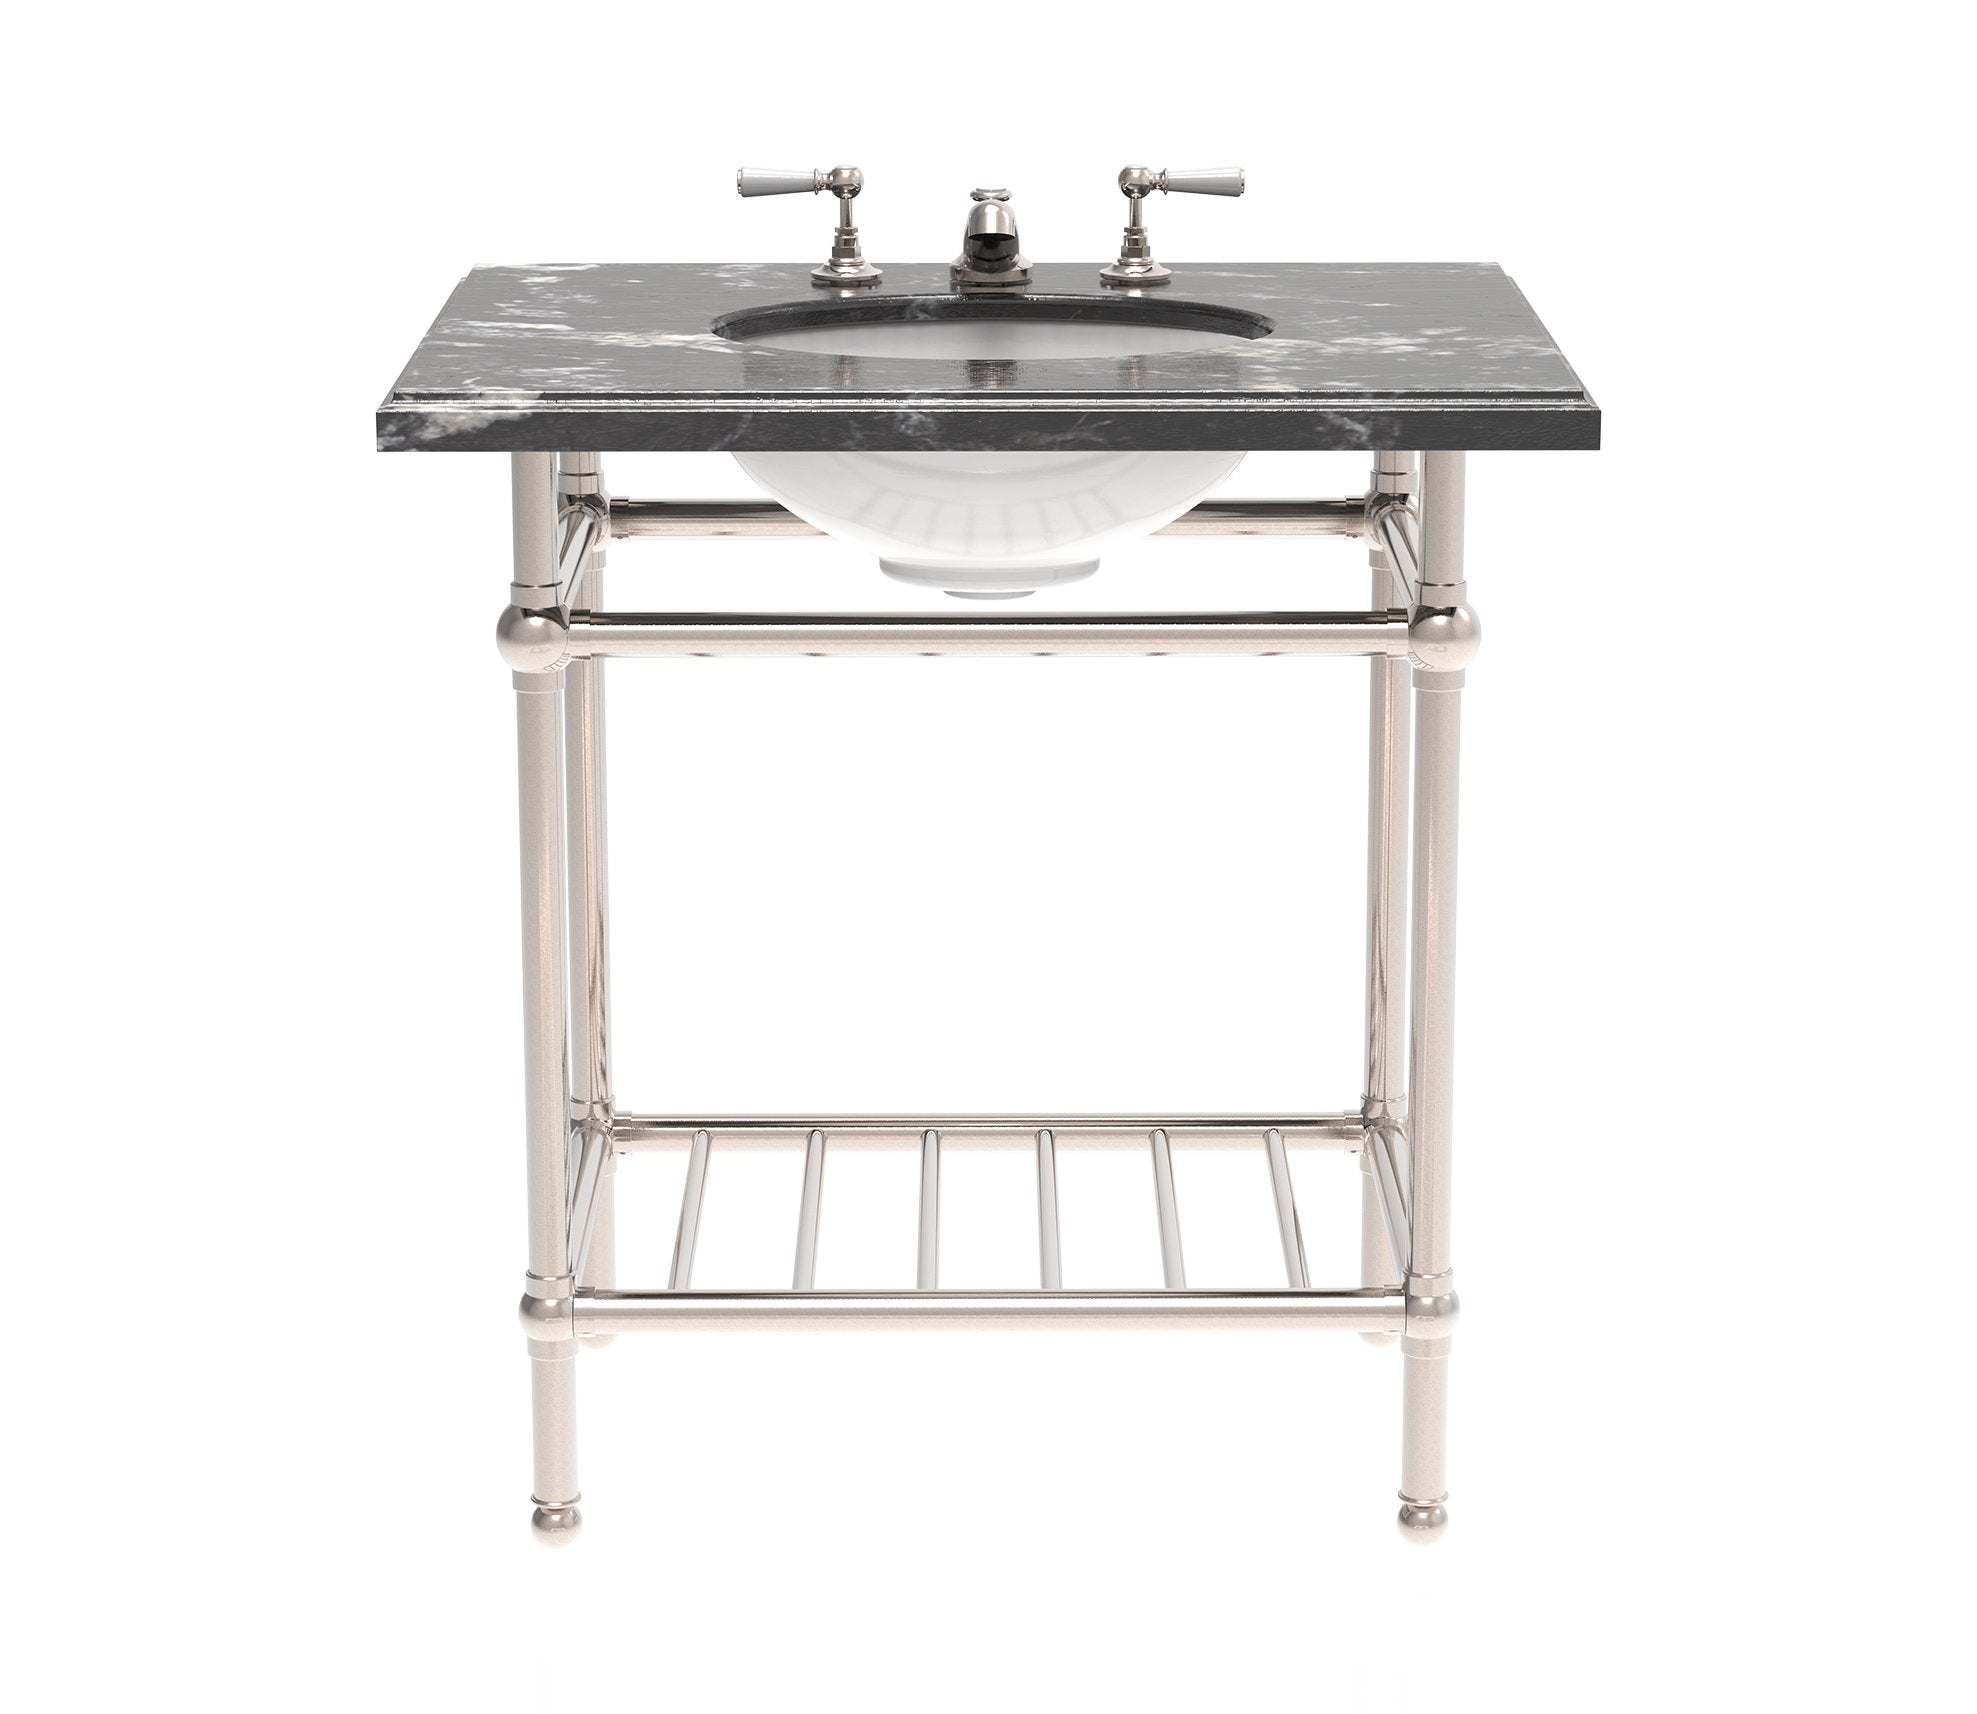 Gotham Washstand with Metal Shelf Single Product Image 2